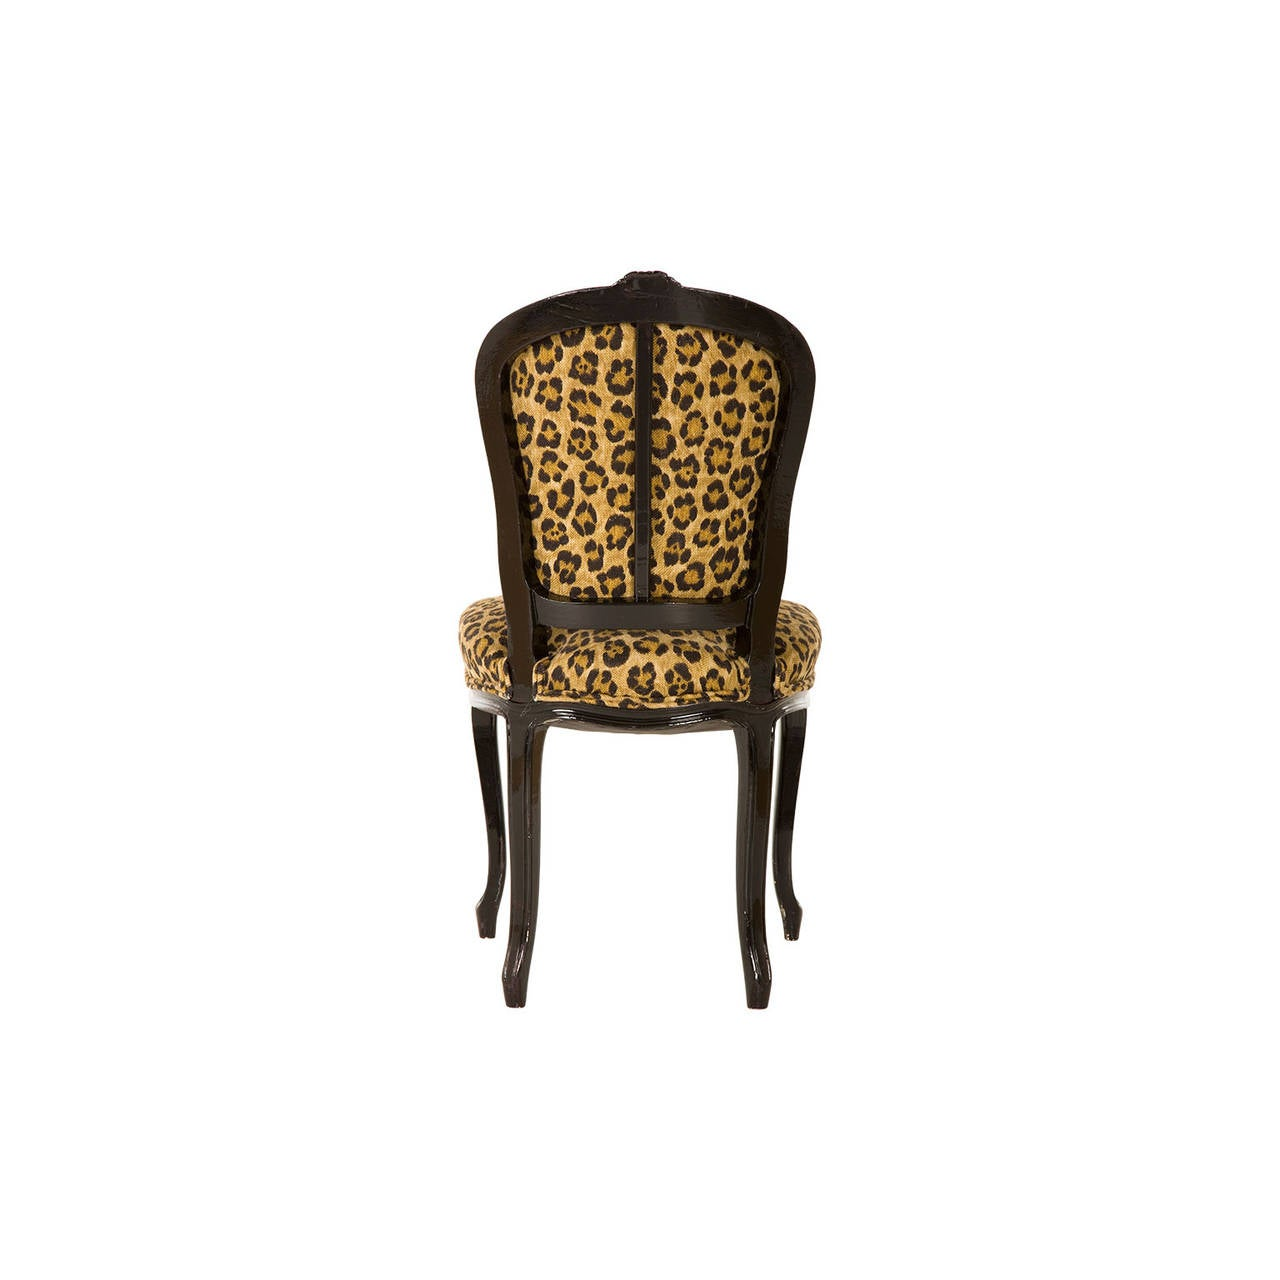 Cheetah Chair Vintage Leopard Print Cafe Chair At 1stdibs